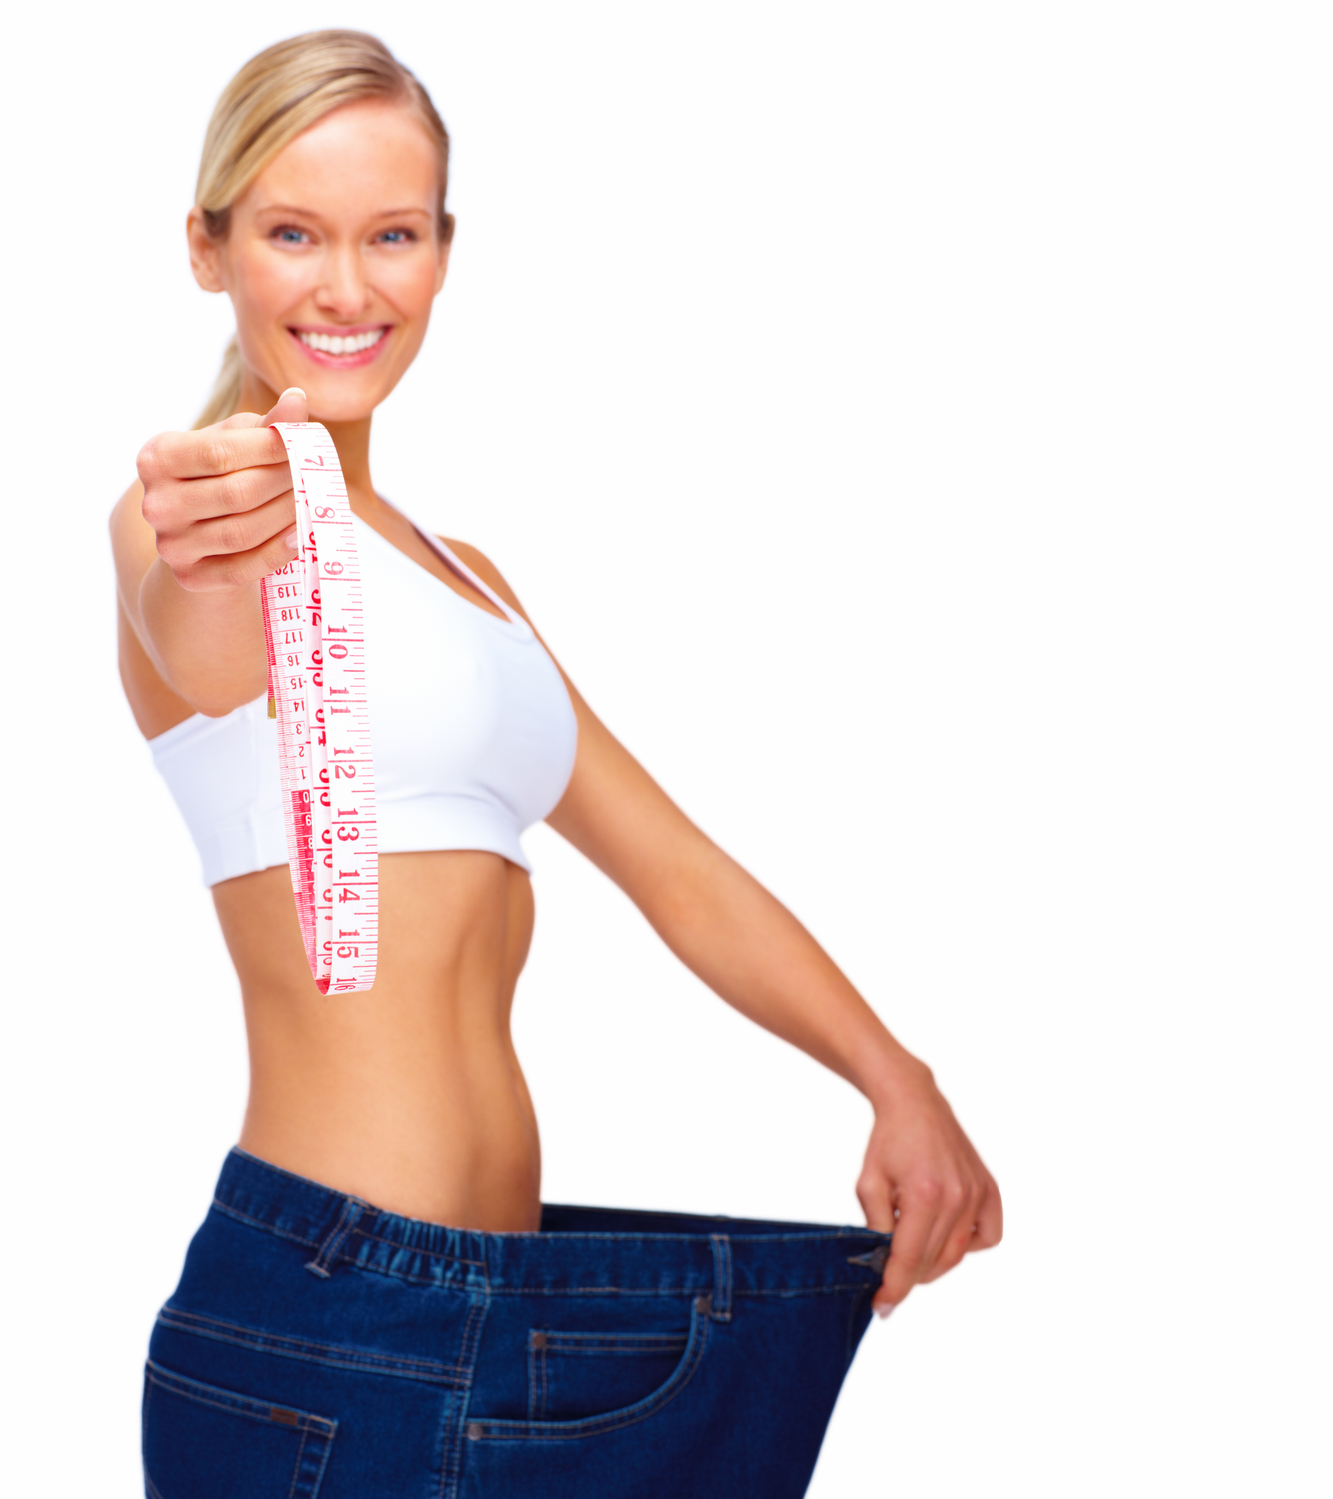 Weightloss Concept - Healthy young woman on white